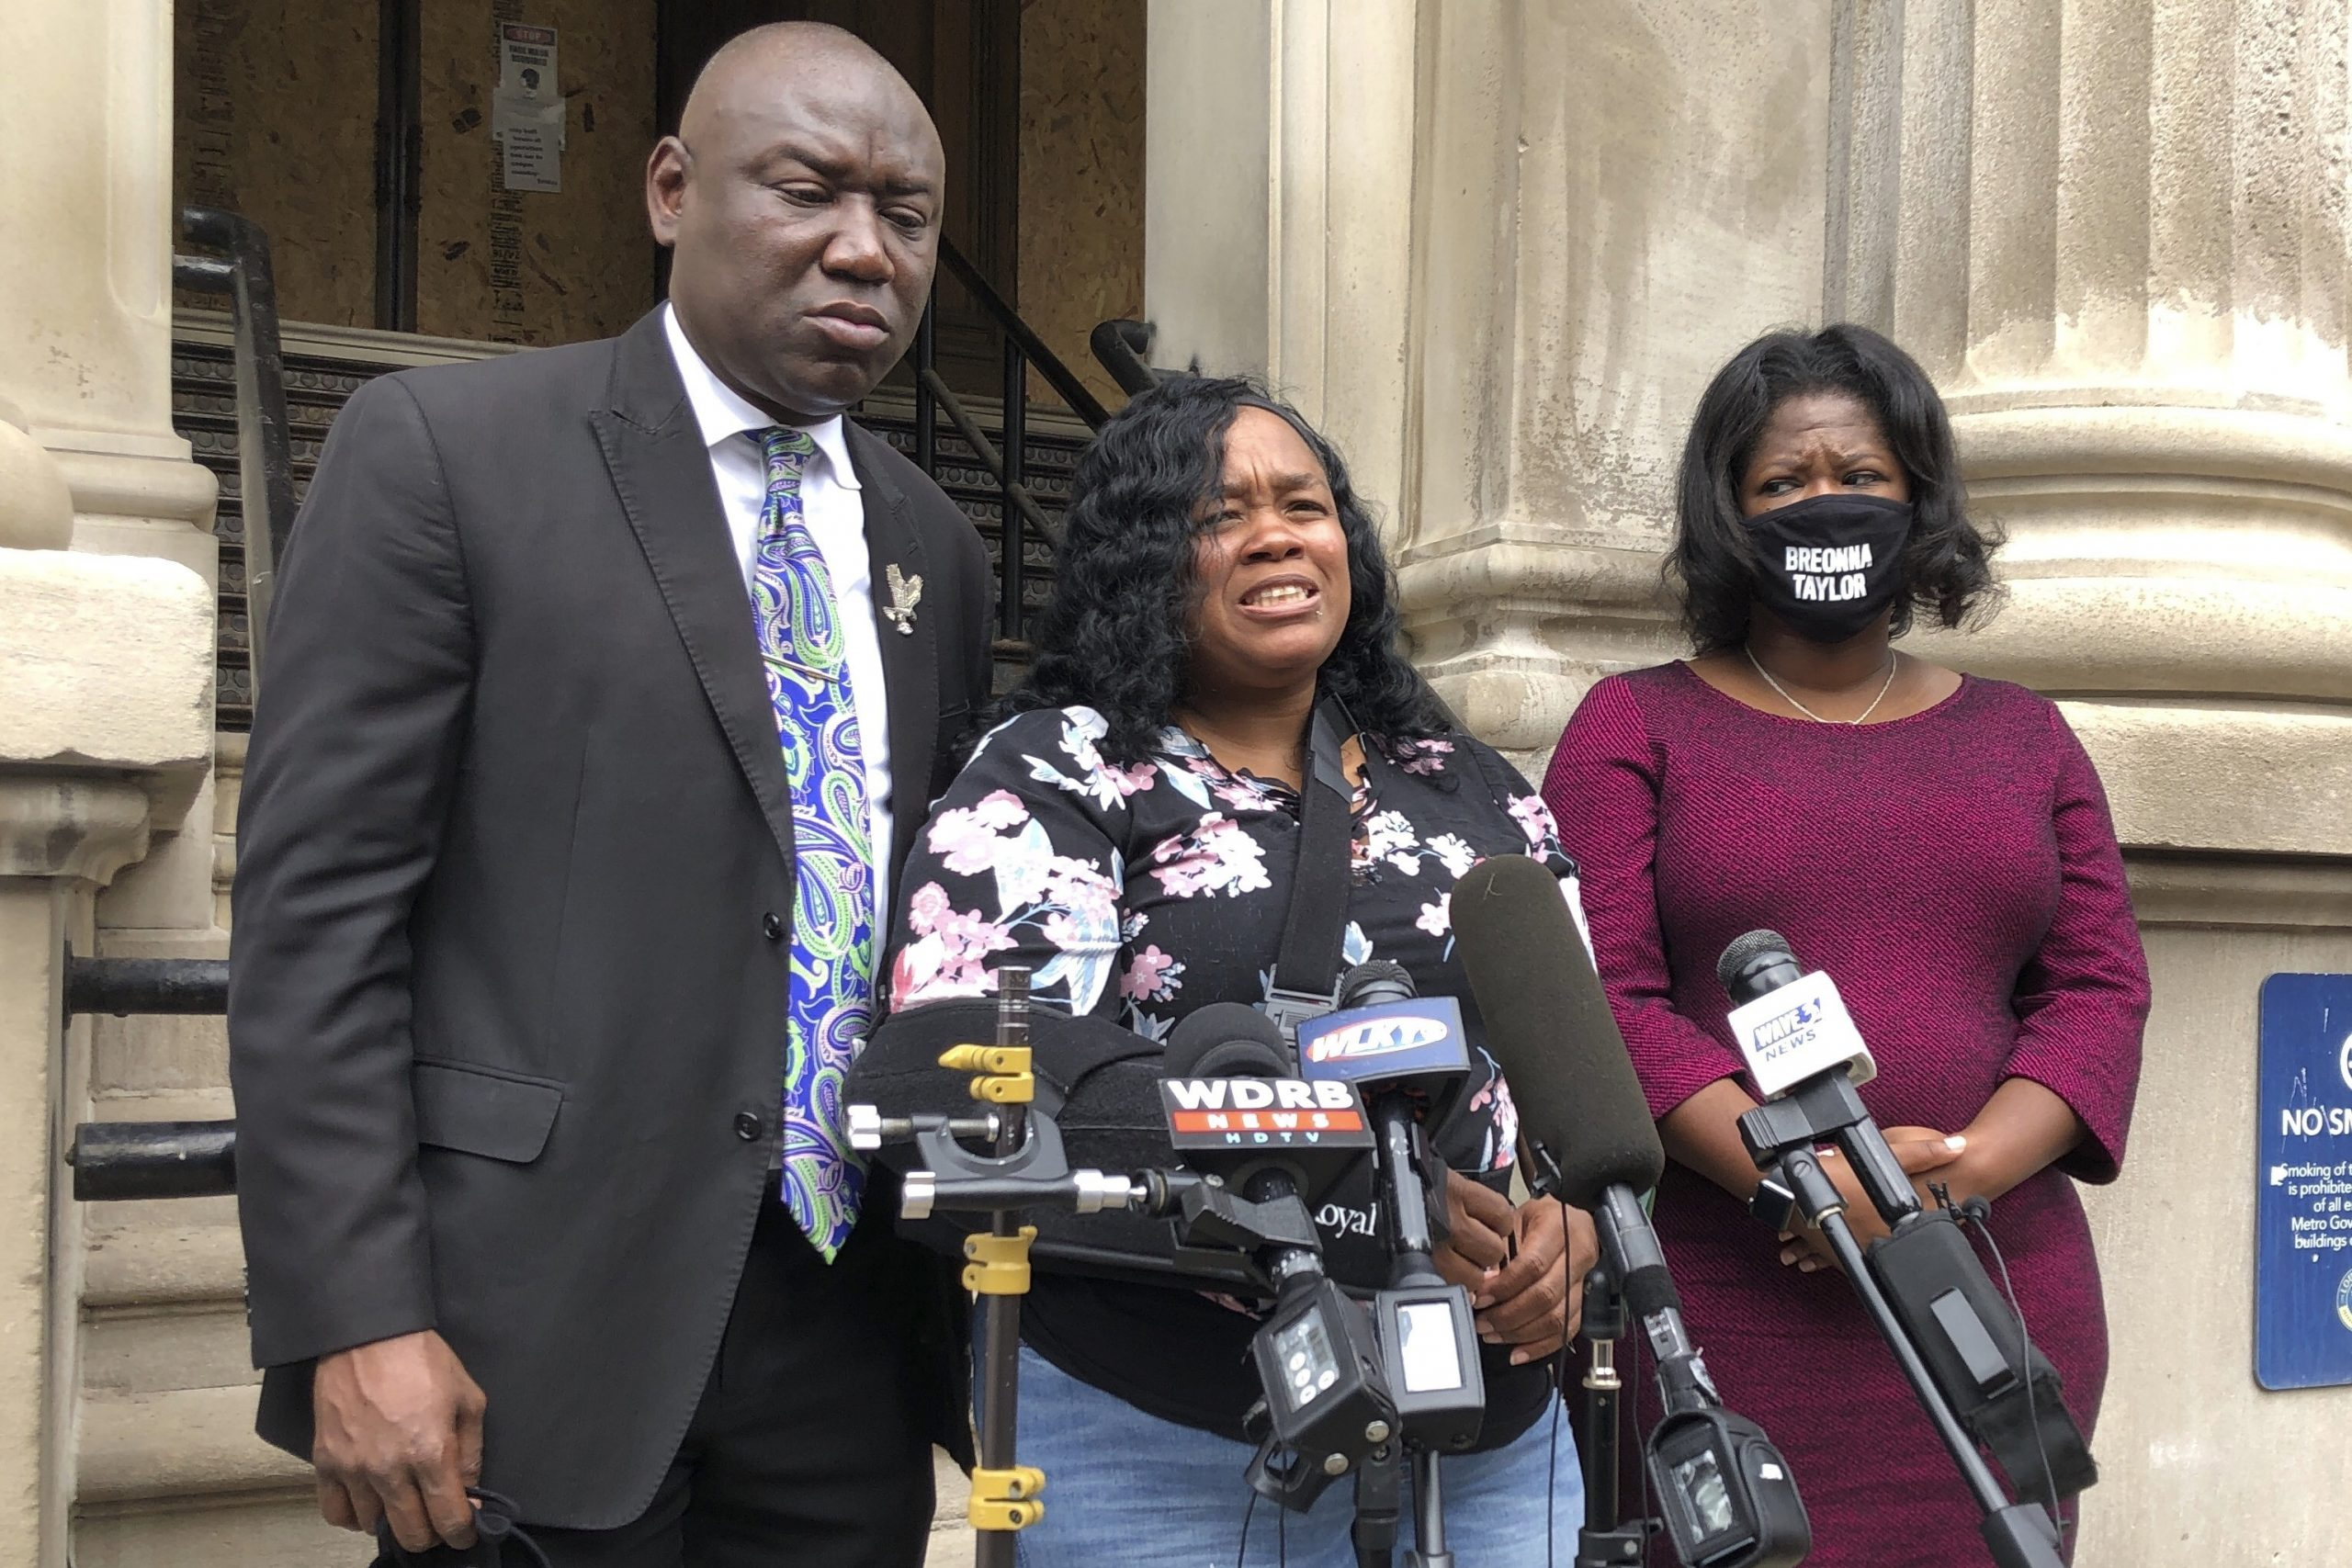 Breonna Taylor's Mom: 'I Have No Faith in the Legal System'